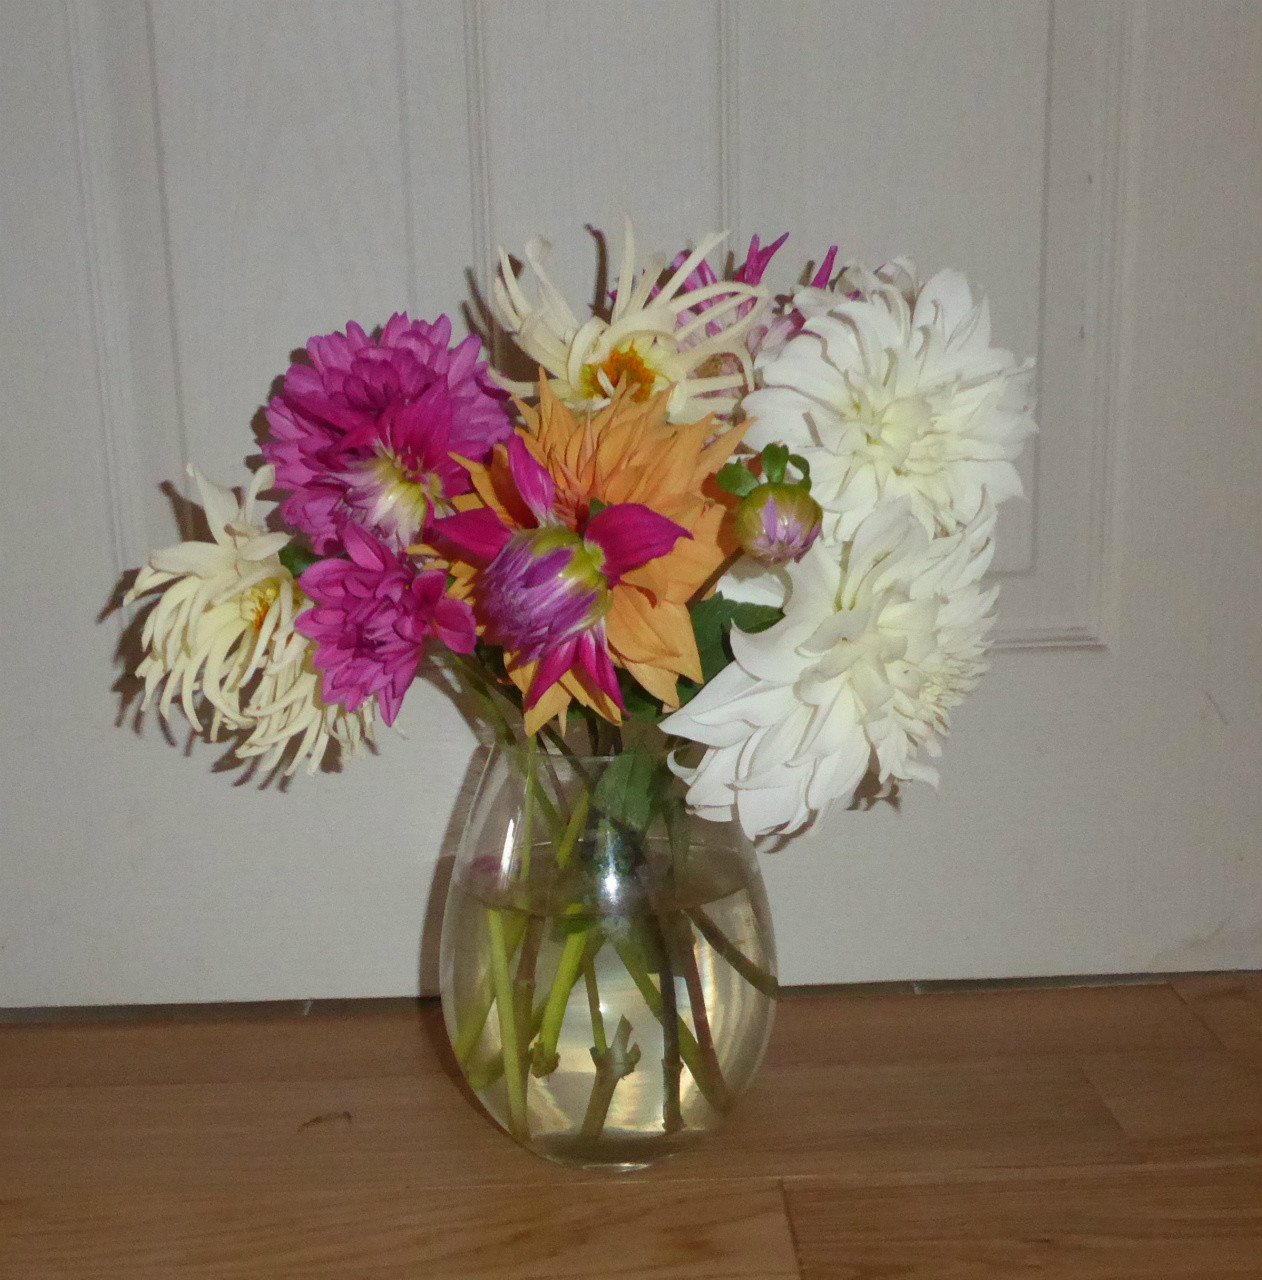 glass vase with lemons of november 2016 www alittlebitofsunshine co uk inside the large flowered begonias have given an impressive show this summer too but now like the dahlias it is time for them to rest and gather their strength